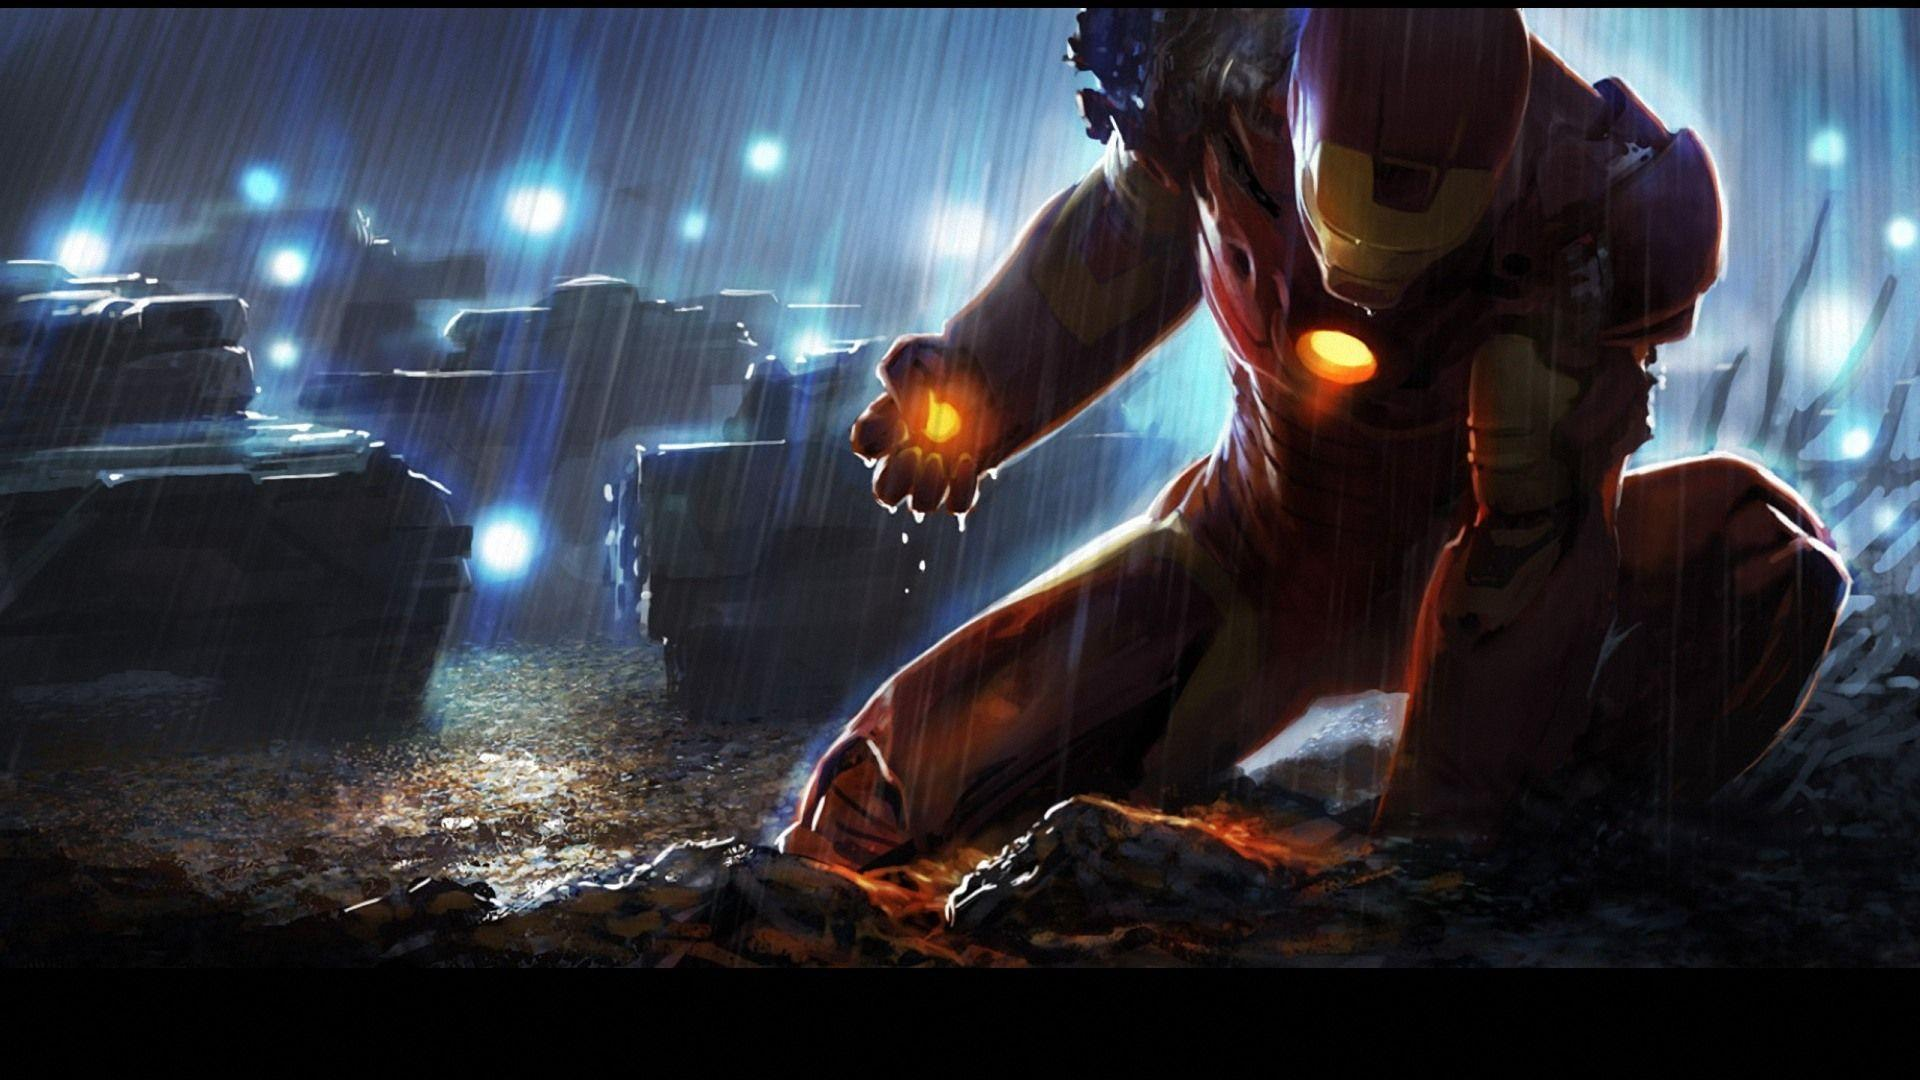 Iron Man Wallpapers Full Hd Desktop Background: Iron Man HD Wallpapers